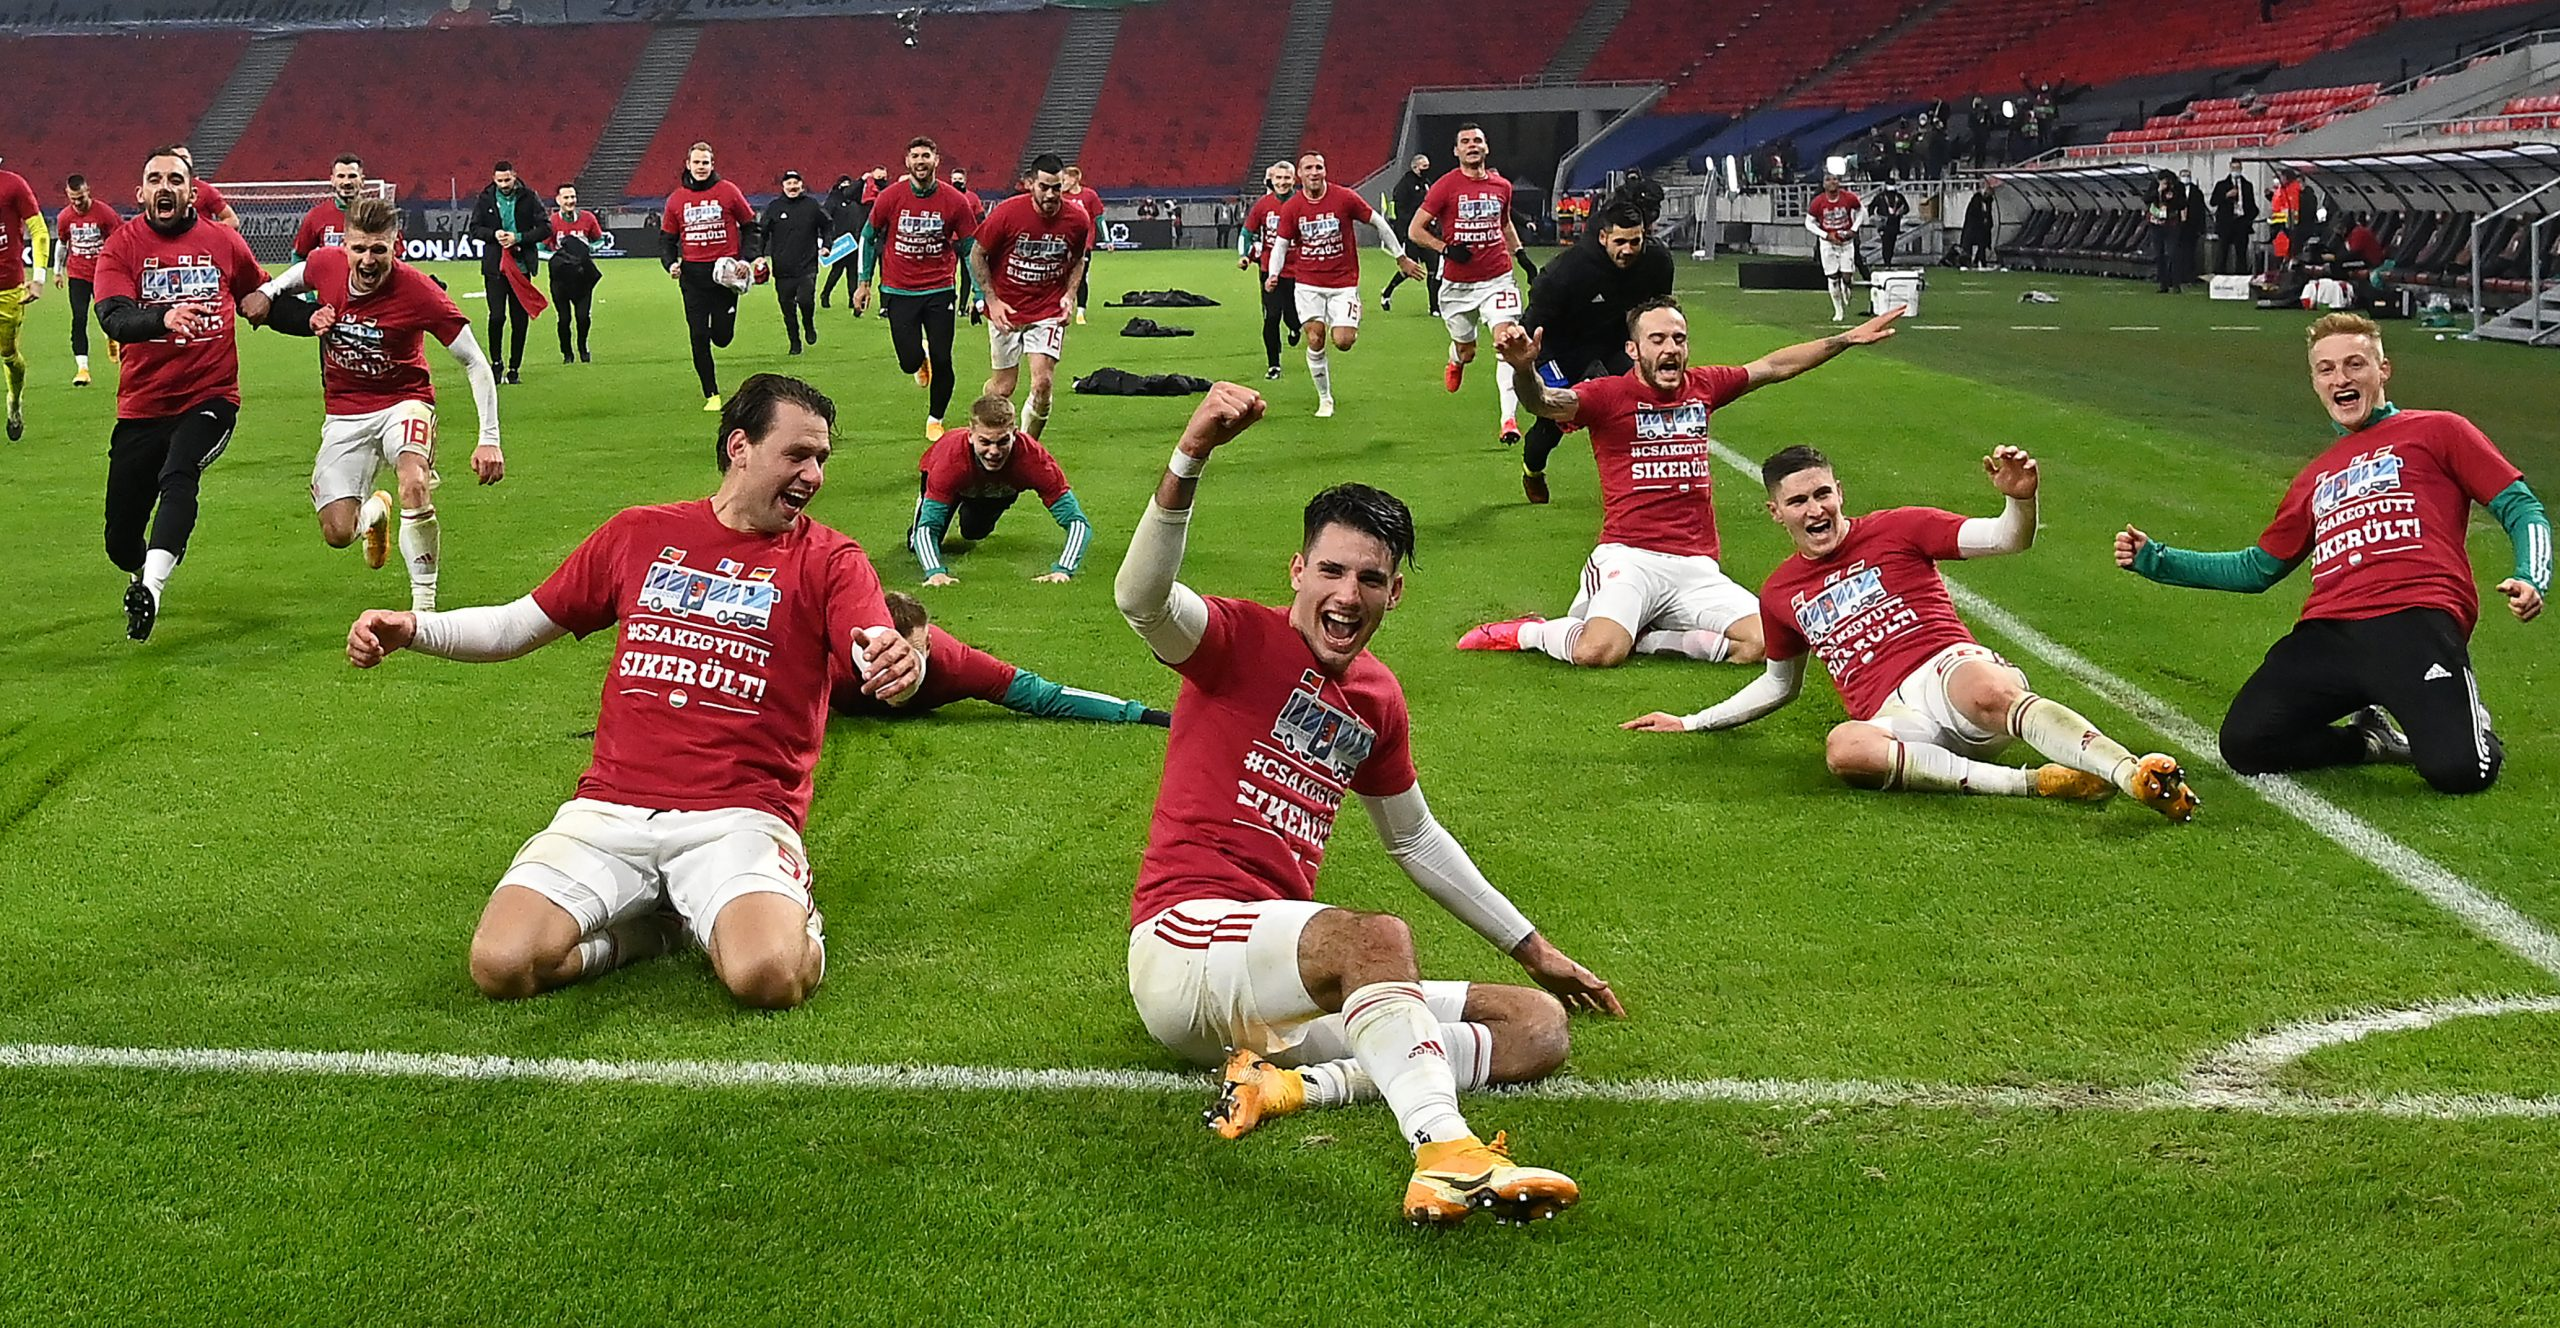 Hungarian Football in 2020: An Unexpectedly Successful Year Amid Pandemic